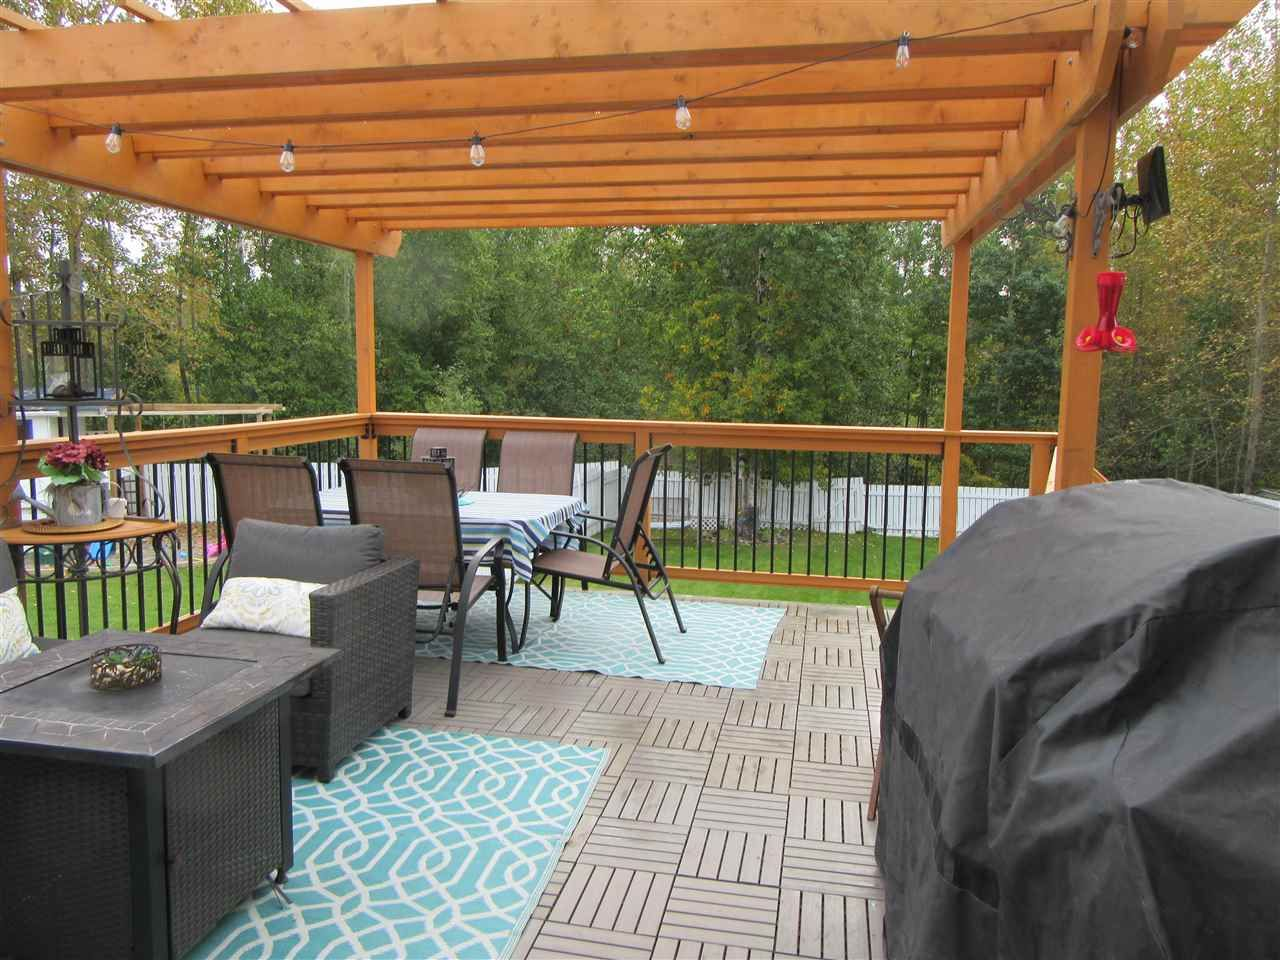 """Photo 3: Photos: 4305 FOSTER Road in Prince George: Charella/Starlane House for sale in """"CHARELLA/STARLANE"""" (PG City South (Zone 74))  : MLS®# R2499513"""